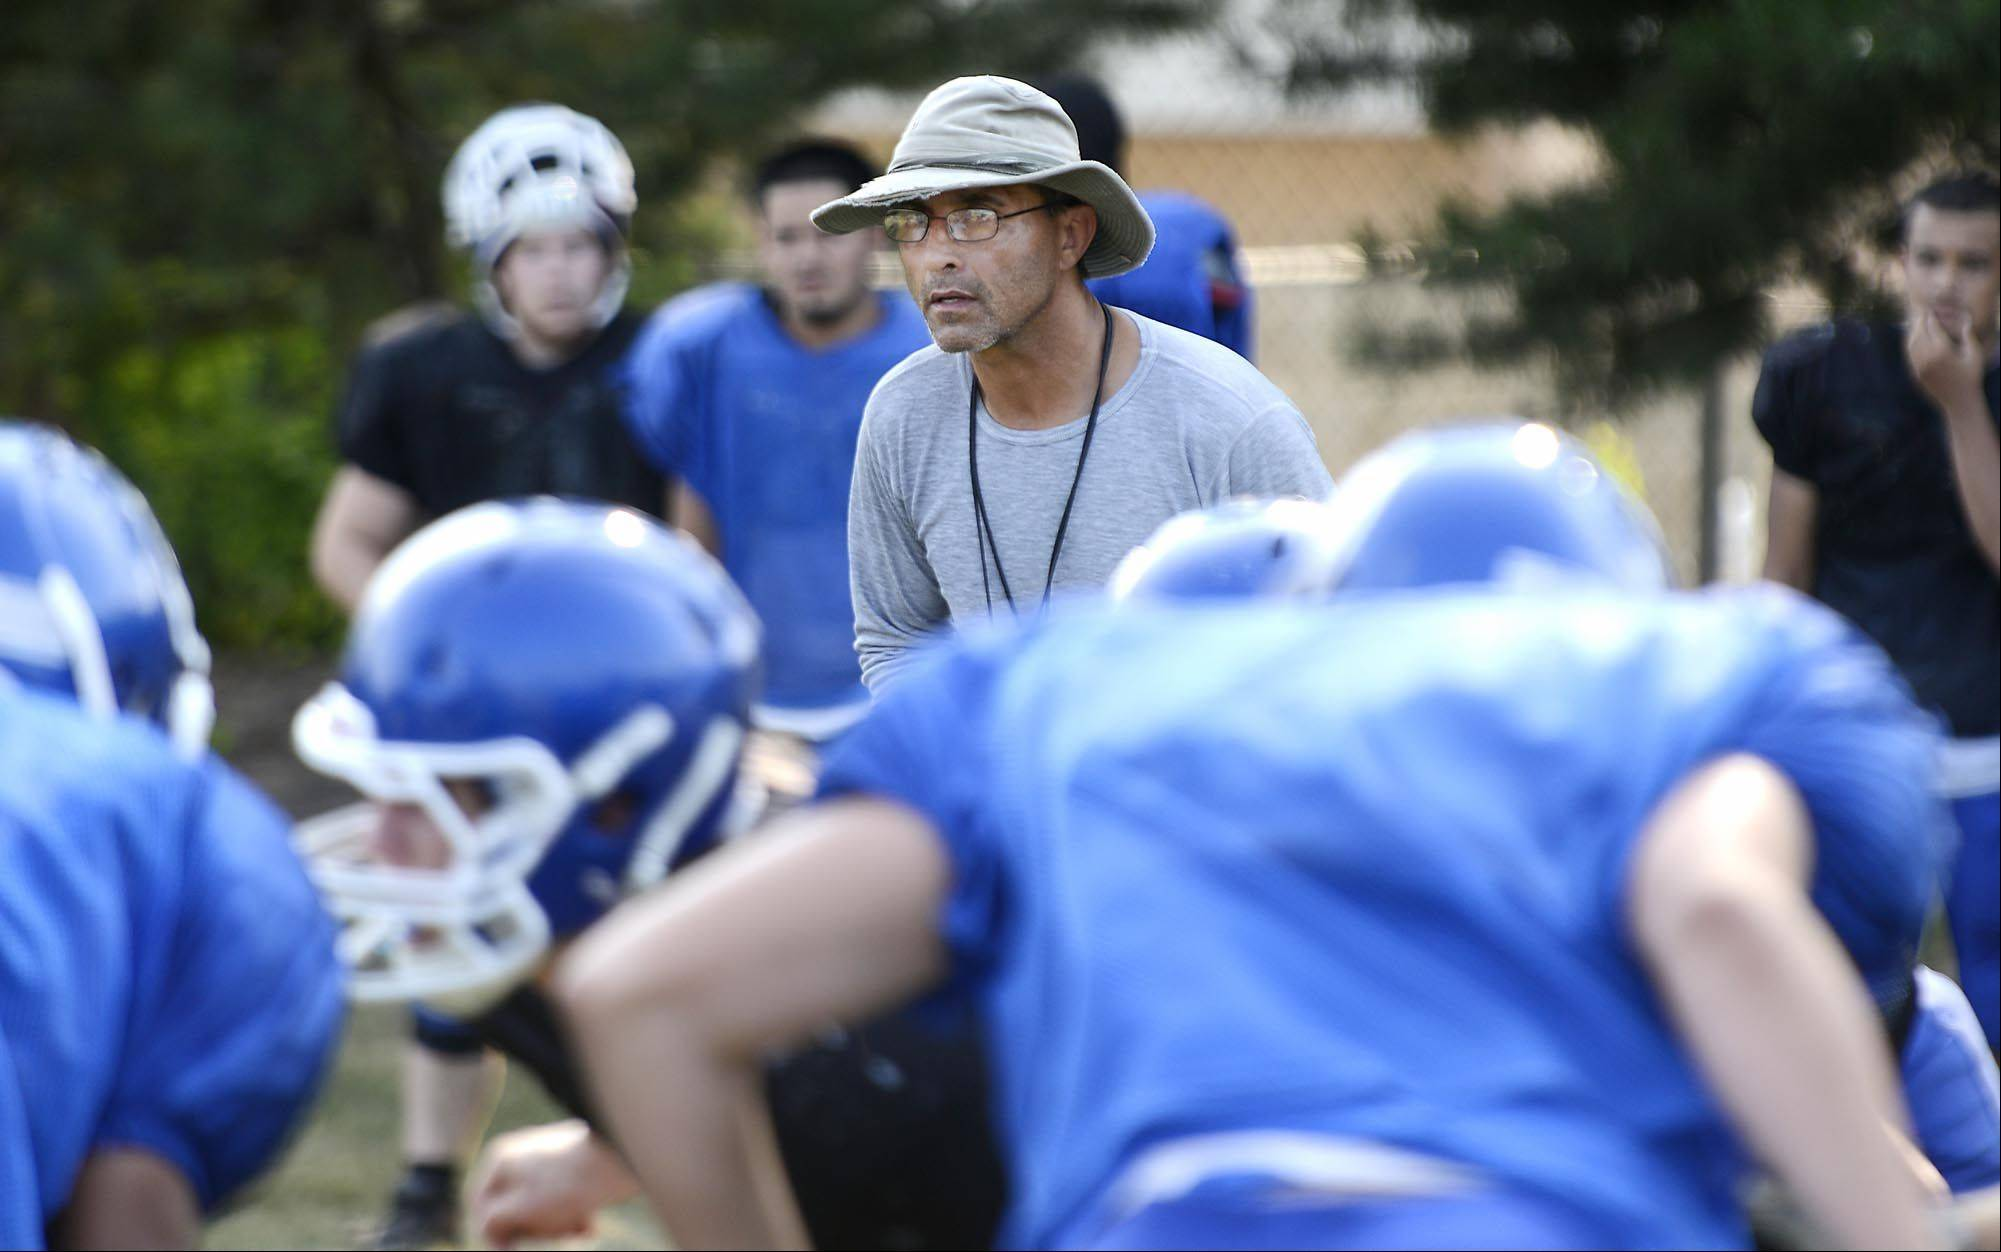 Third-year coach Vito Andriola has brought a tough coaching style to Carpentersville, but it�s working as the Chargers are 3-0 heading into Friday�s showdown at Cary-Grove.